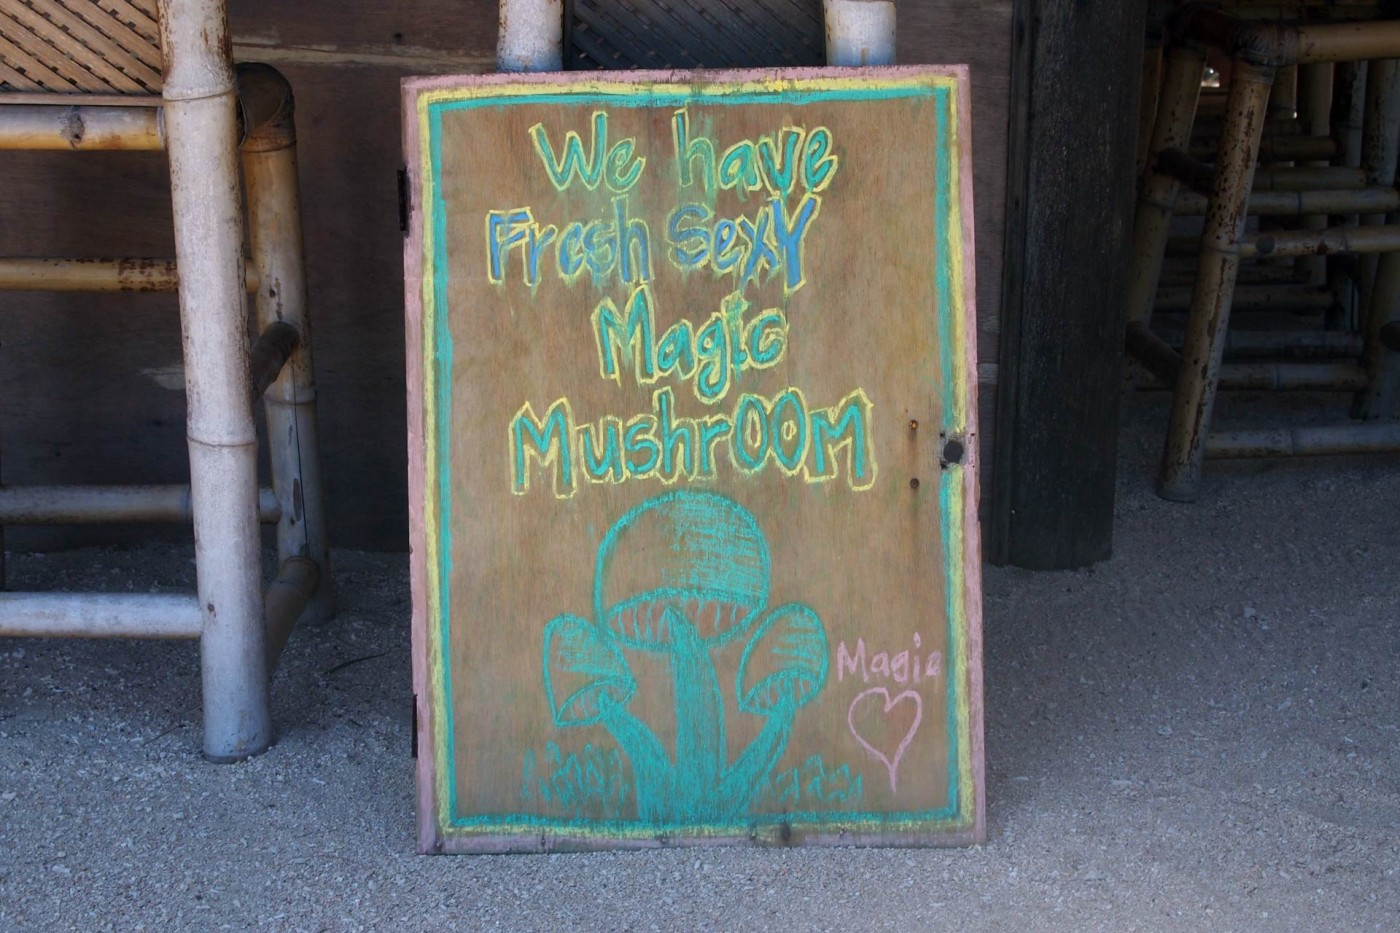 Magic Mushroom Schild auf Gili Air, Indonesien